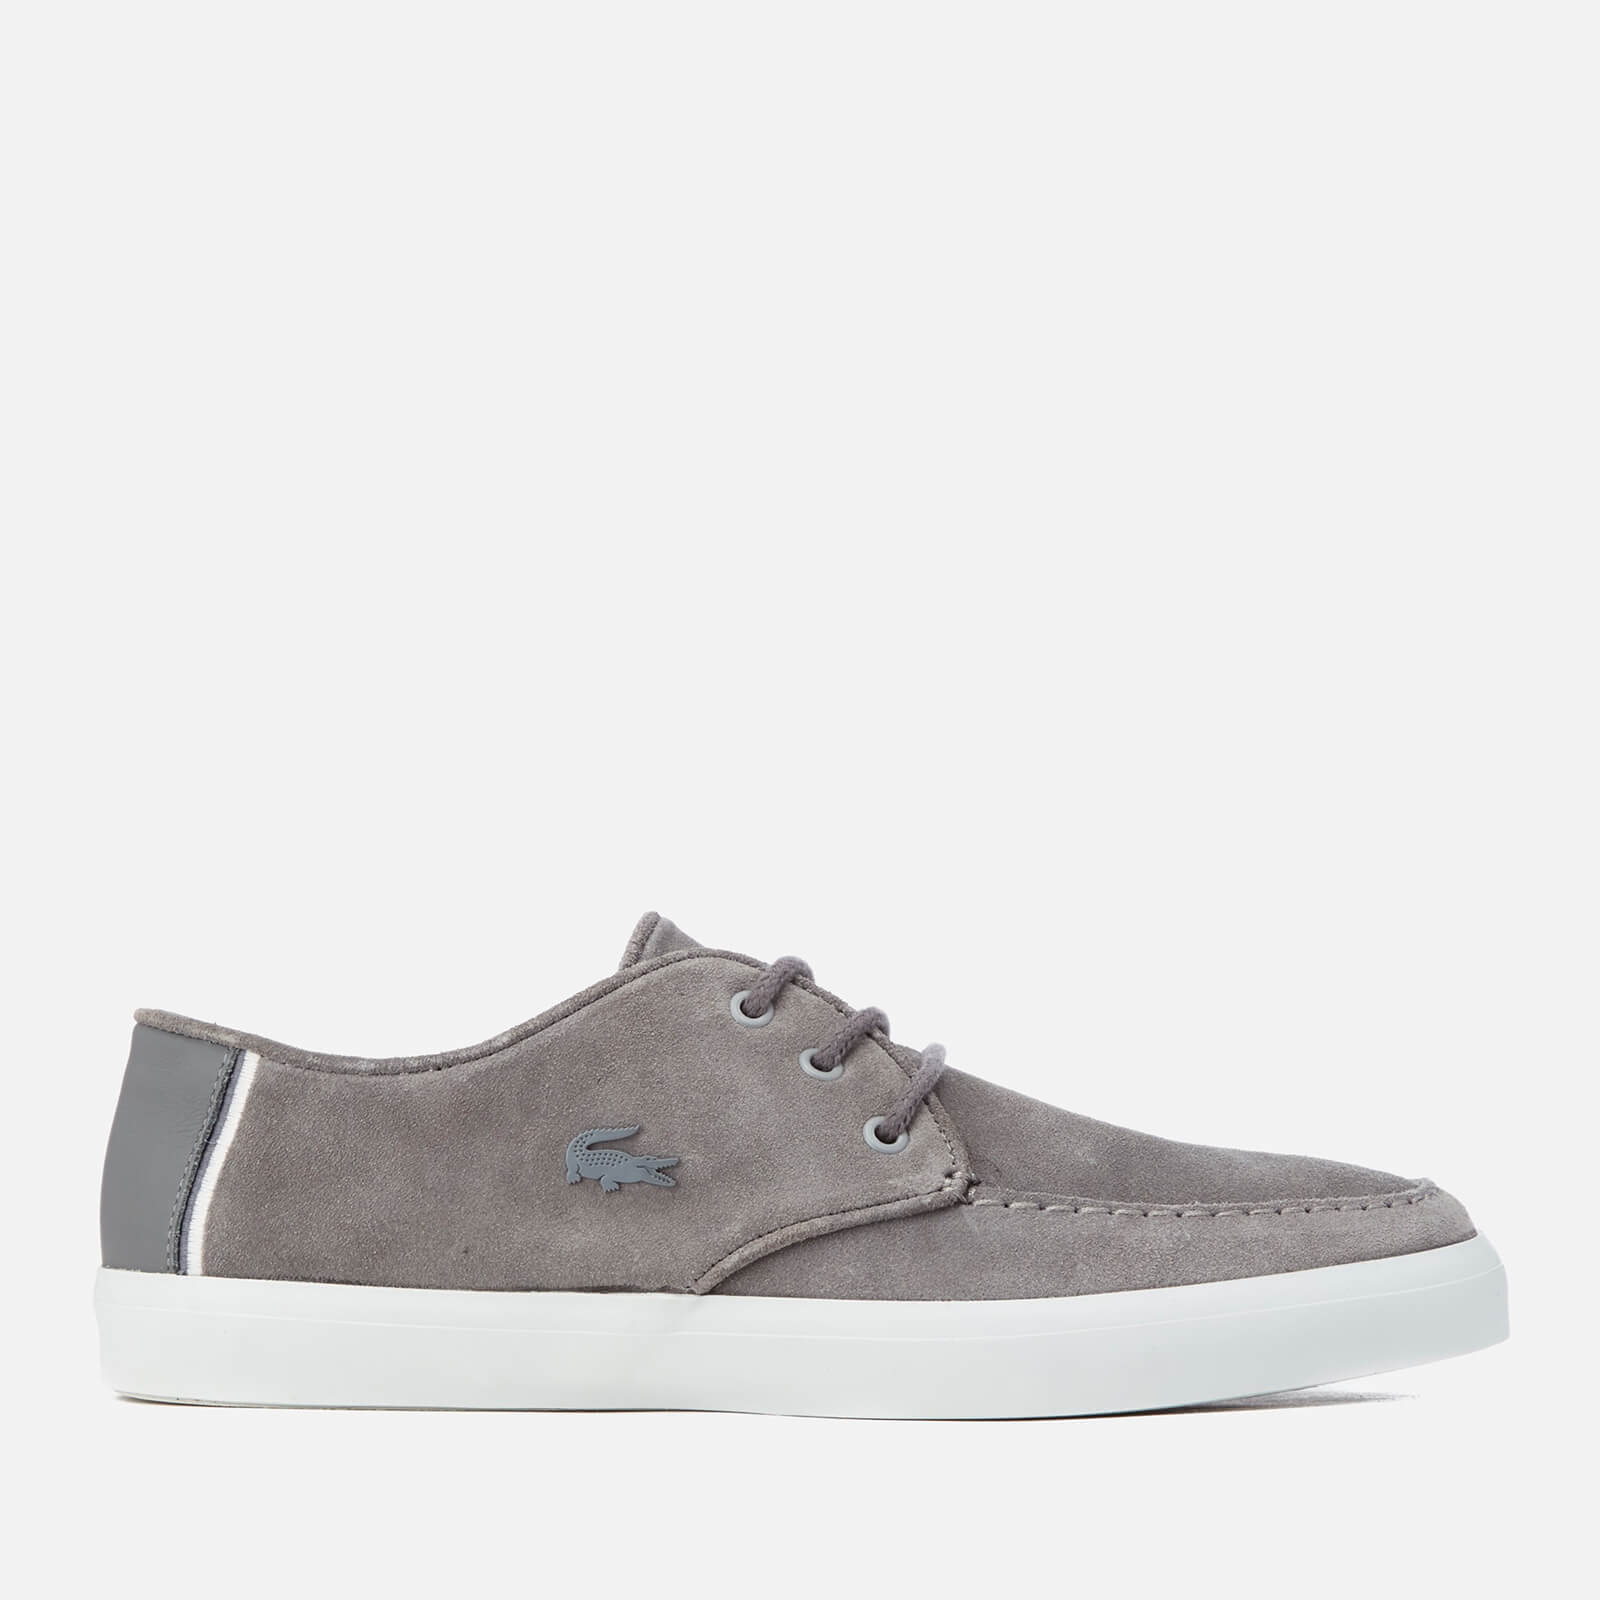 4087e3fcdafcb Lacoste Men s Sevrin 316 1 Suede Boat Shoes - Dark Grey - Free UK Delivery  over £50